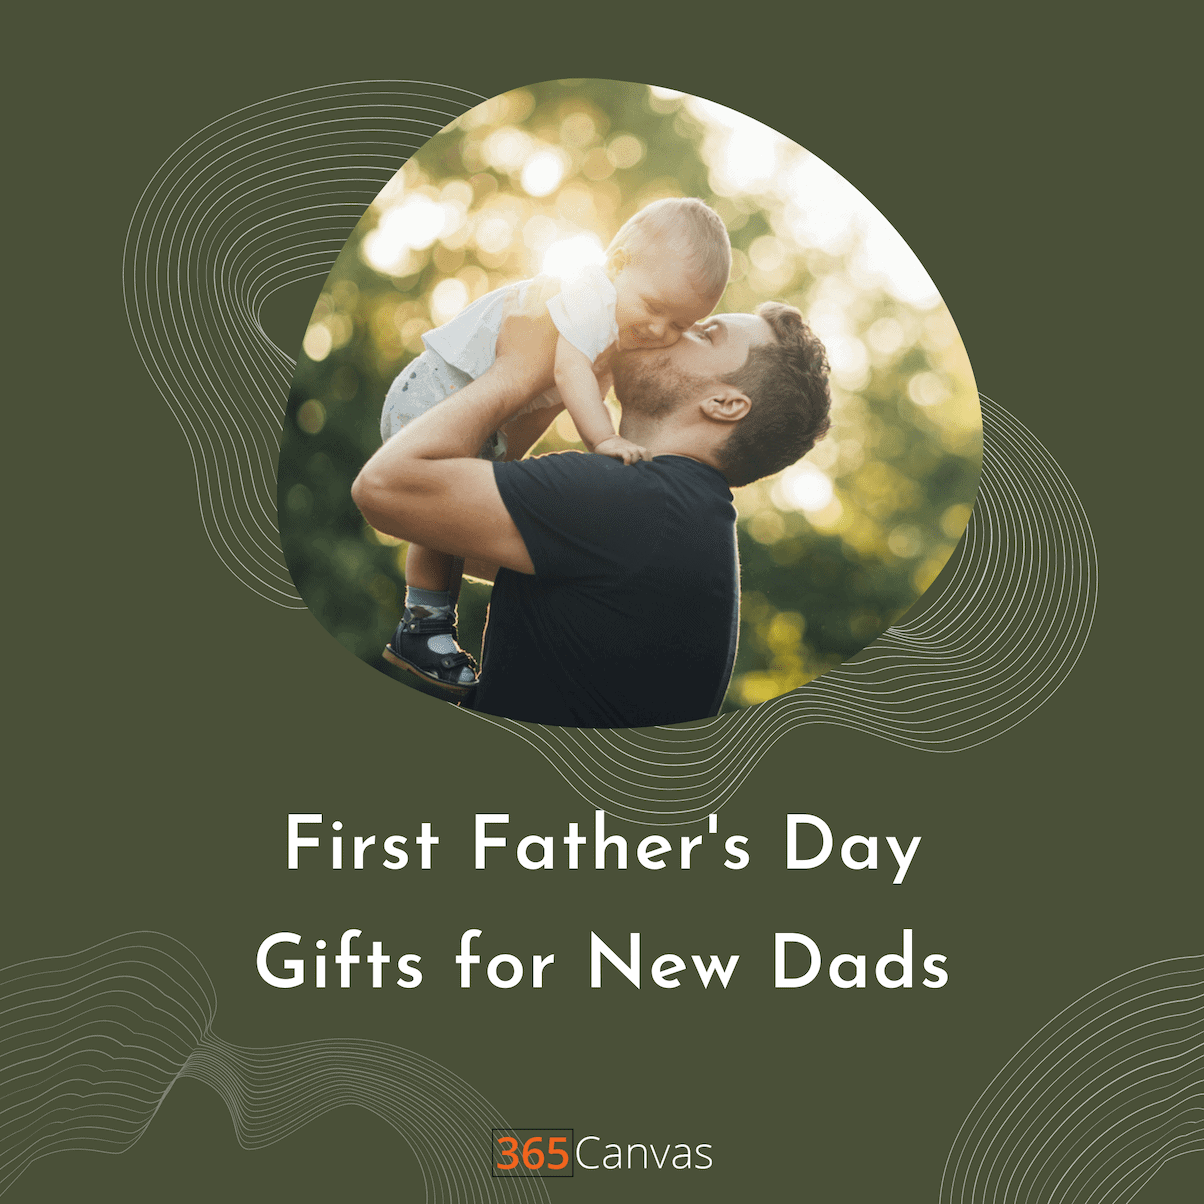 33 Best First Father's Day Gift Ideas In 2021